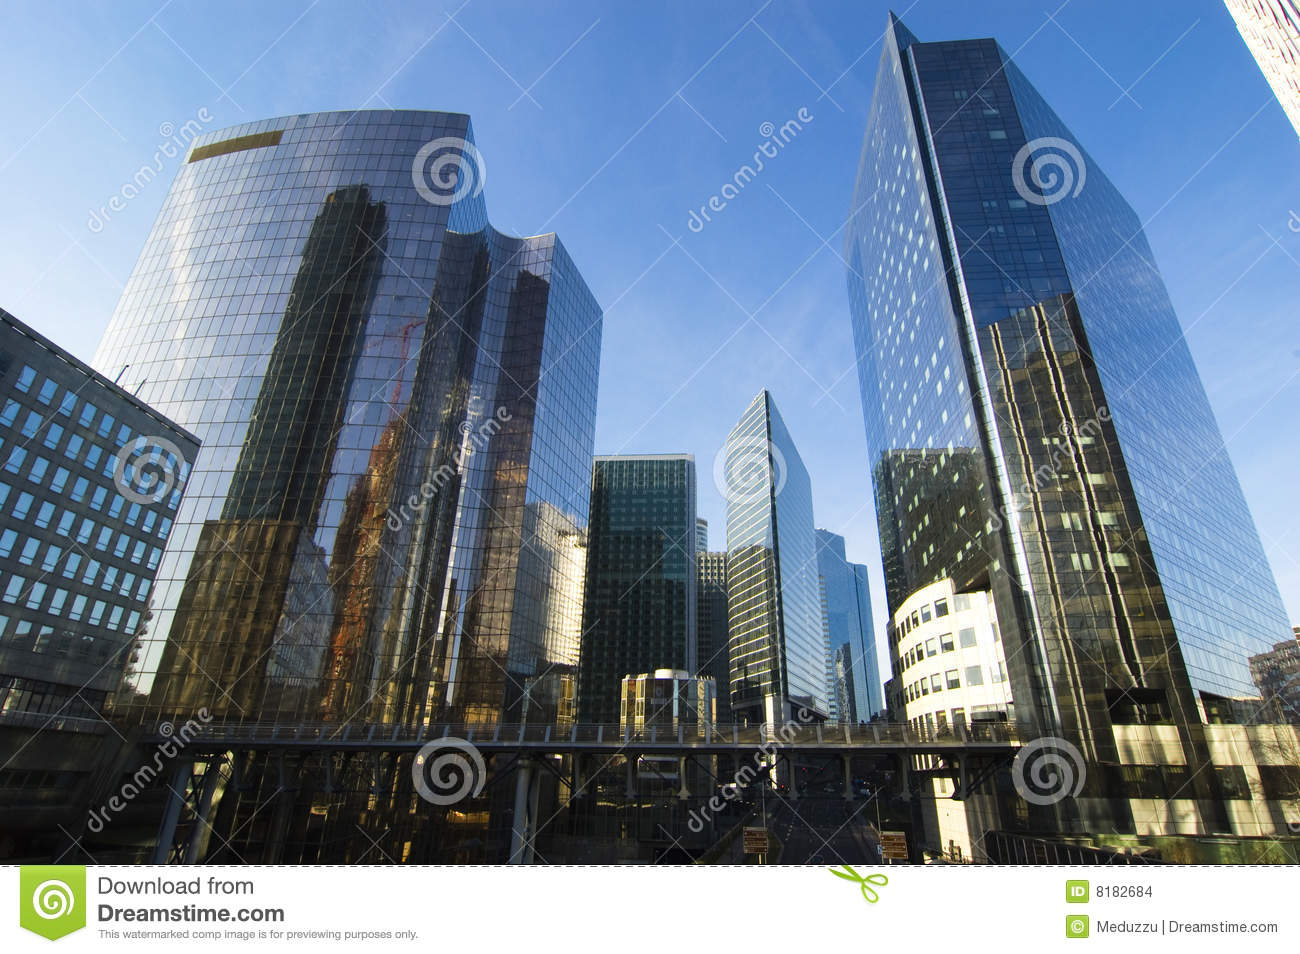 Modern Architecture Paris Modern Architecture In Paris Stock Images  Image 8182684